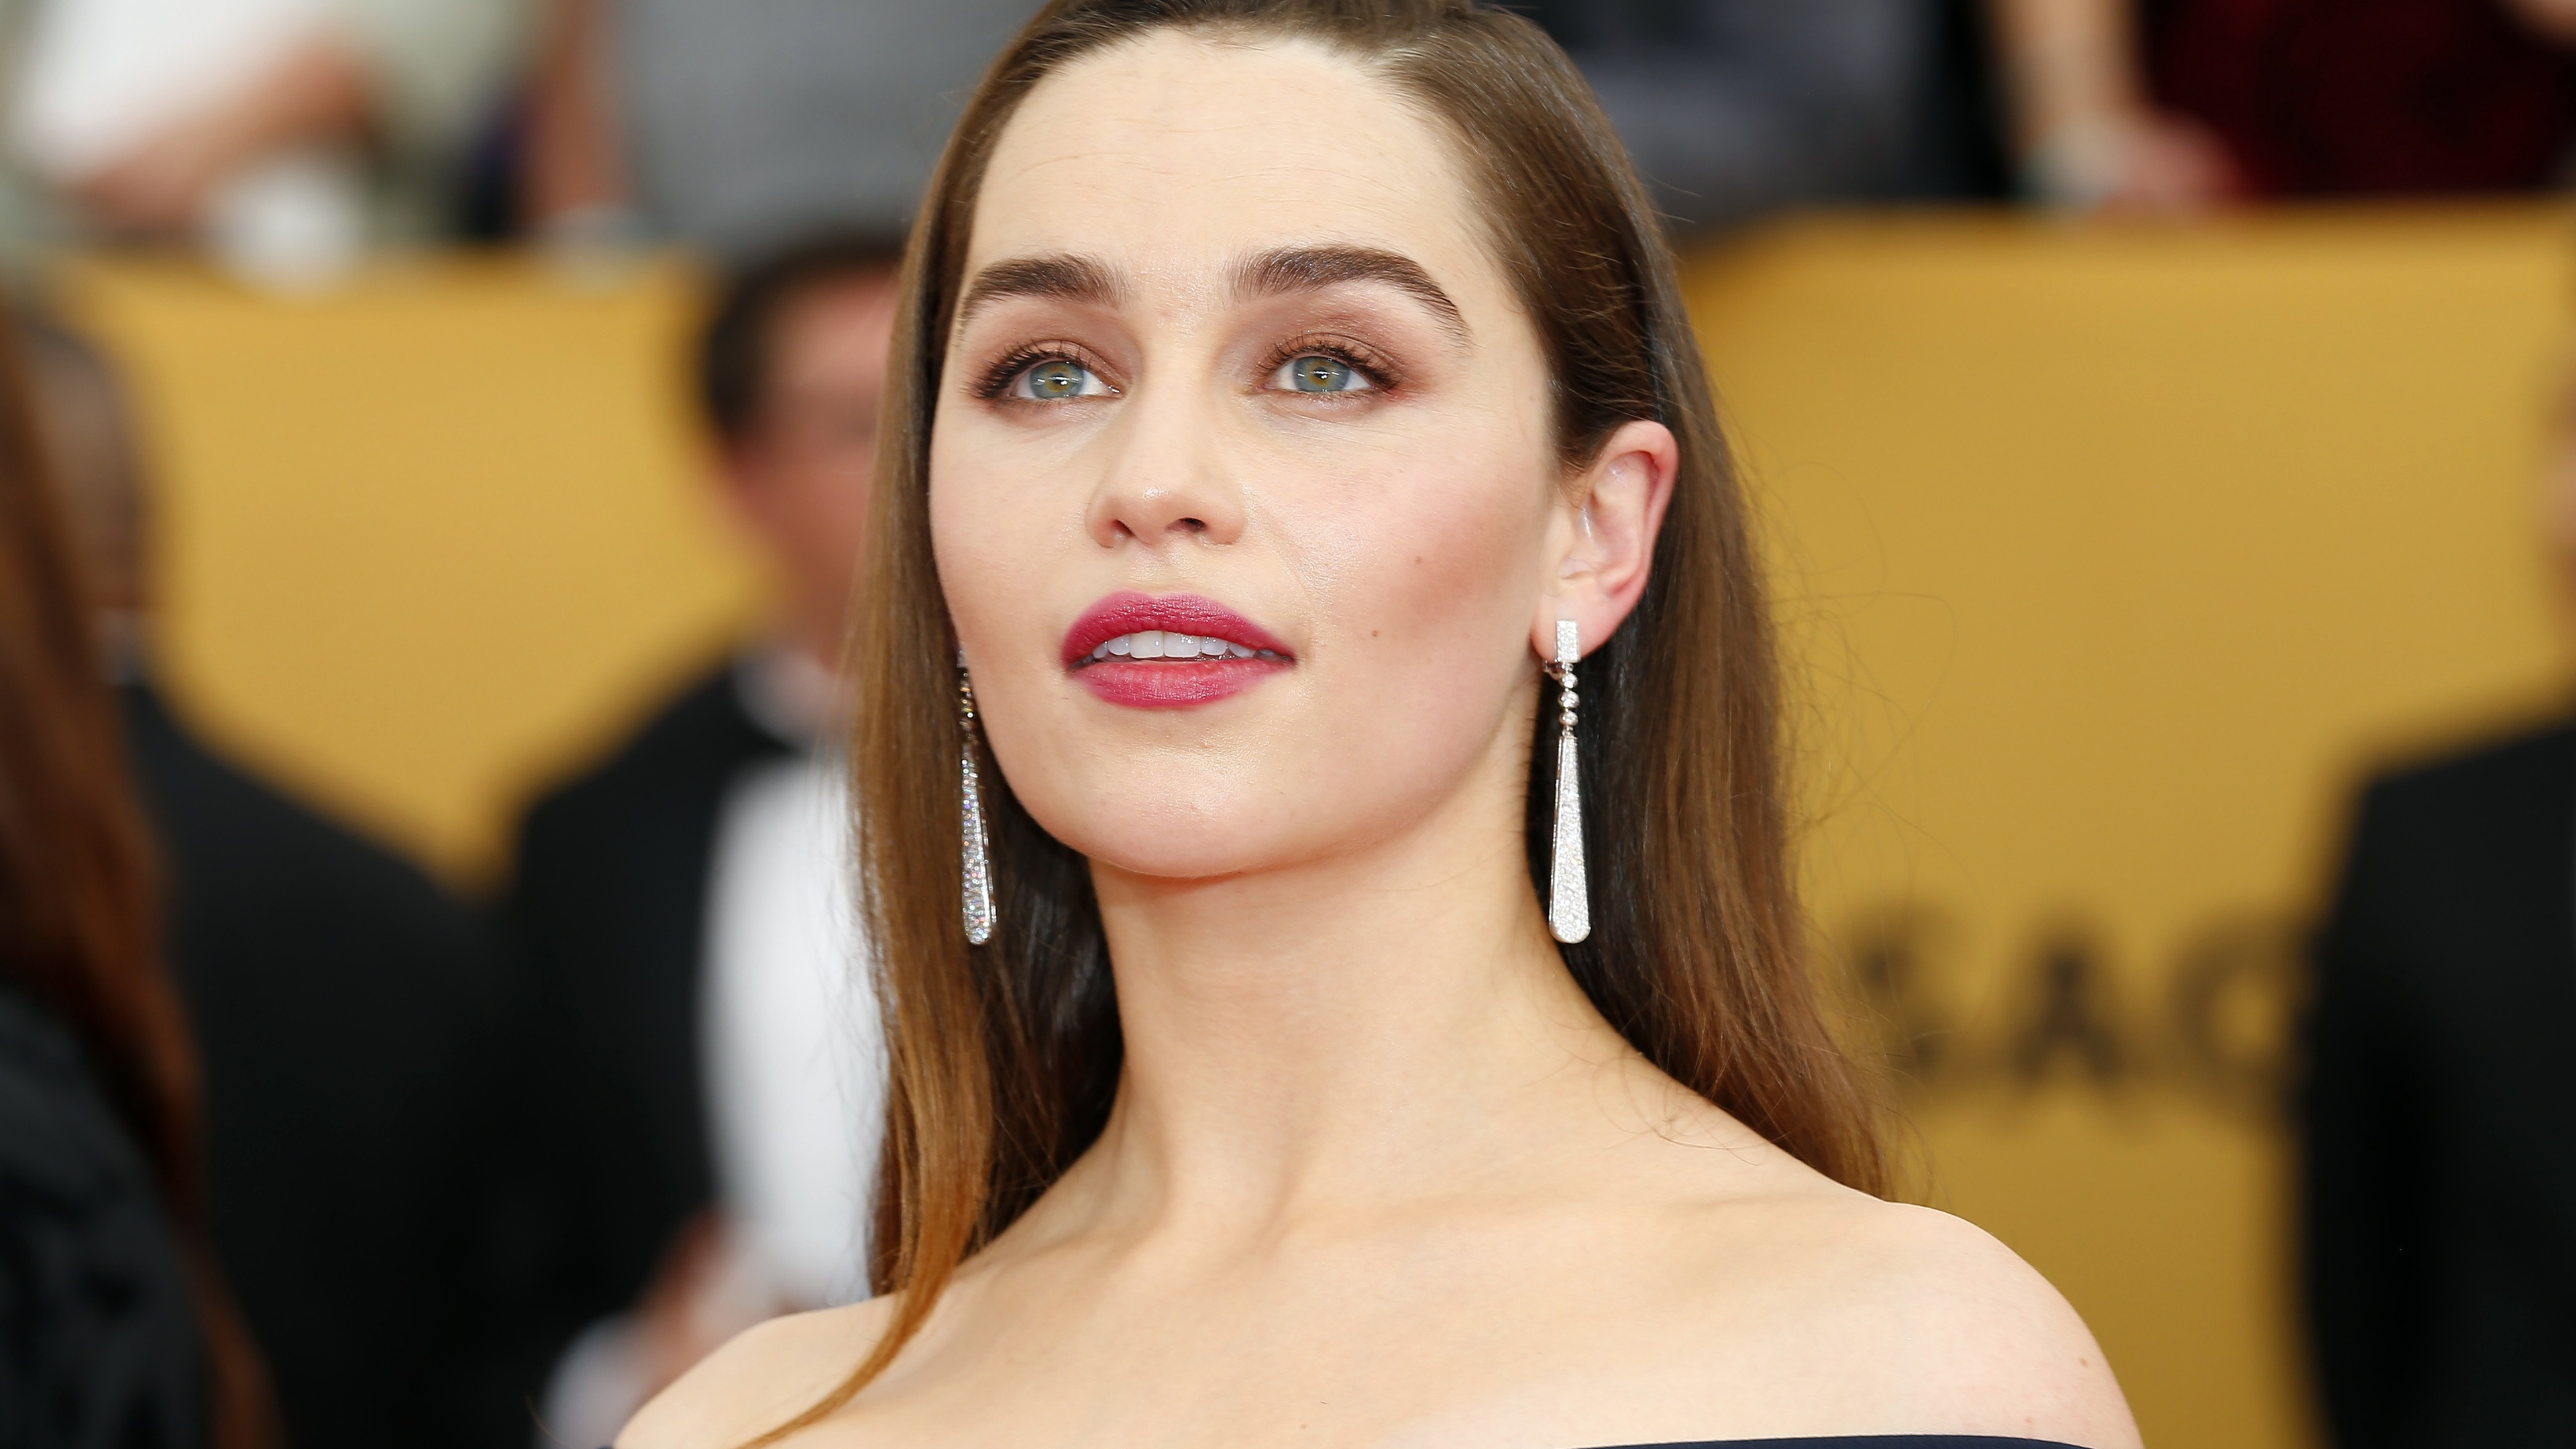 emilia clarke 5k 2019 1536862869 - Emilia Clarke 5k 2019 - hd-wallpapers, girls wallpapers, emilia clarke wallpapers, celebrities wallpapers, 5k wallpapers, 4k-wallpapers